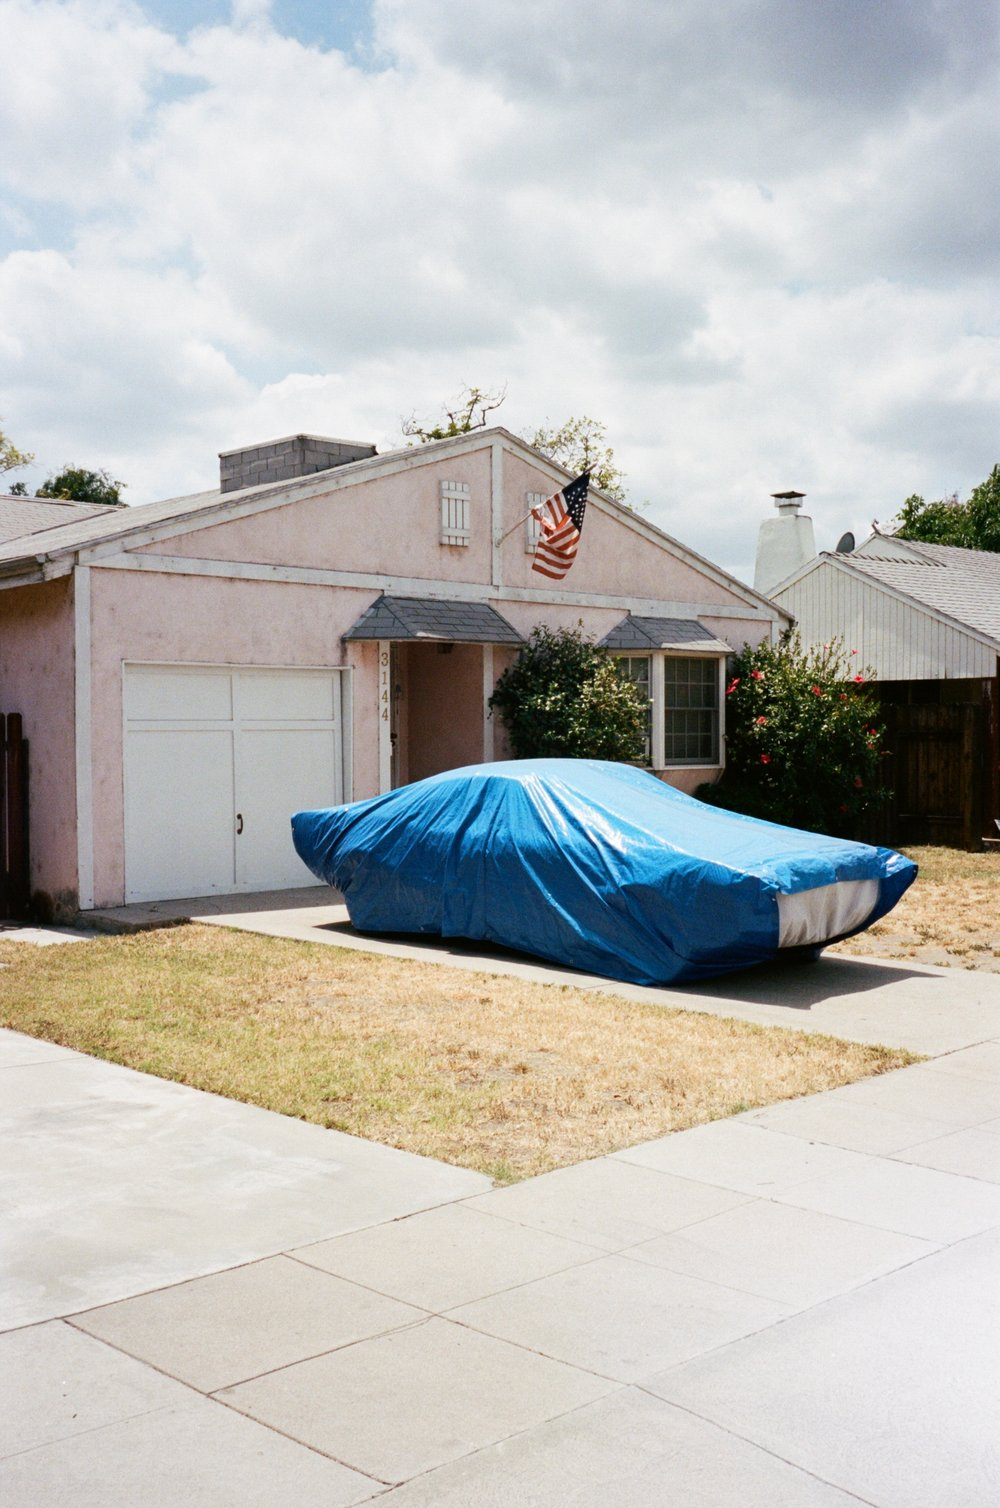 Atwater Village, Los Angeles County, California